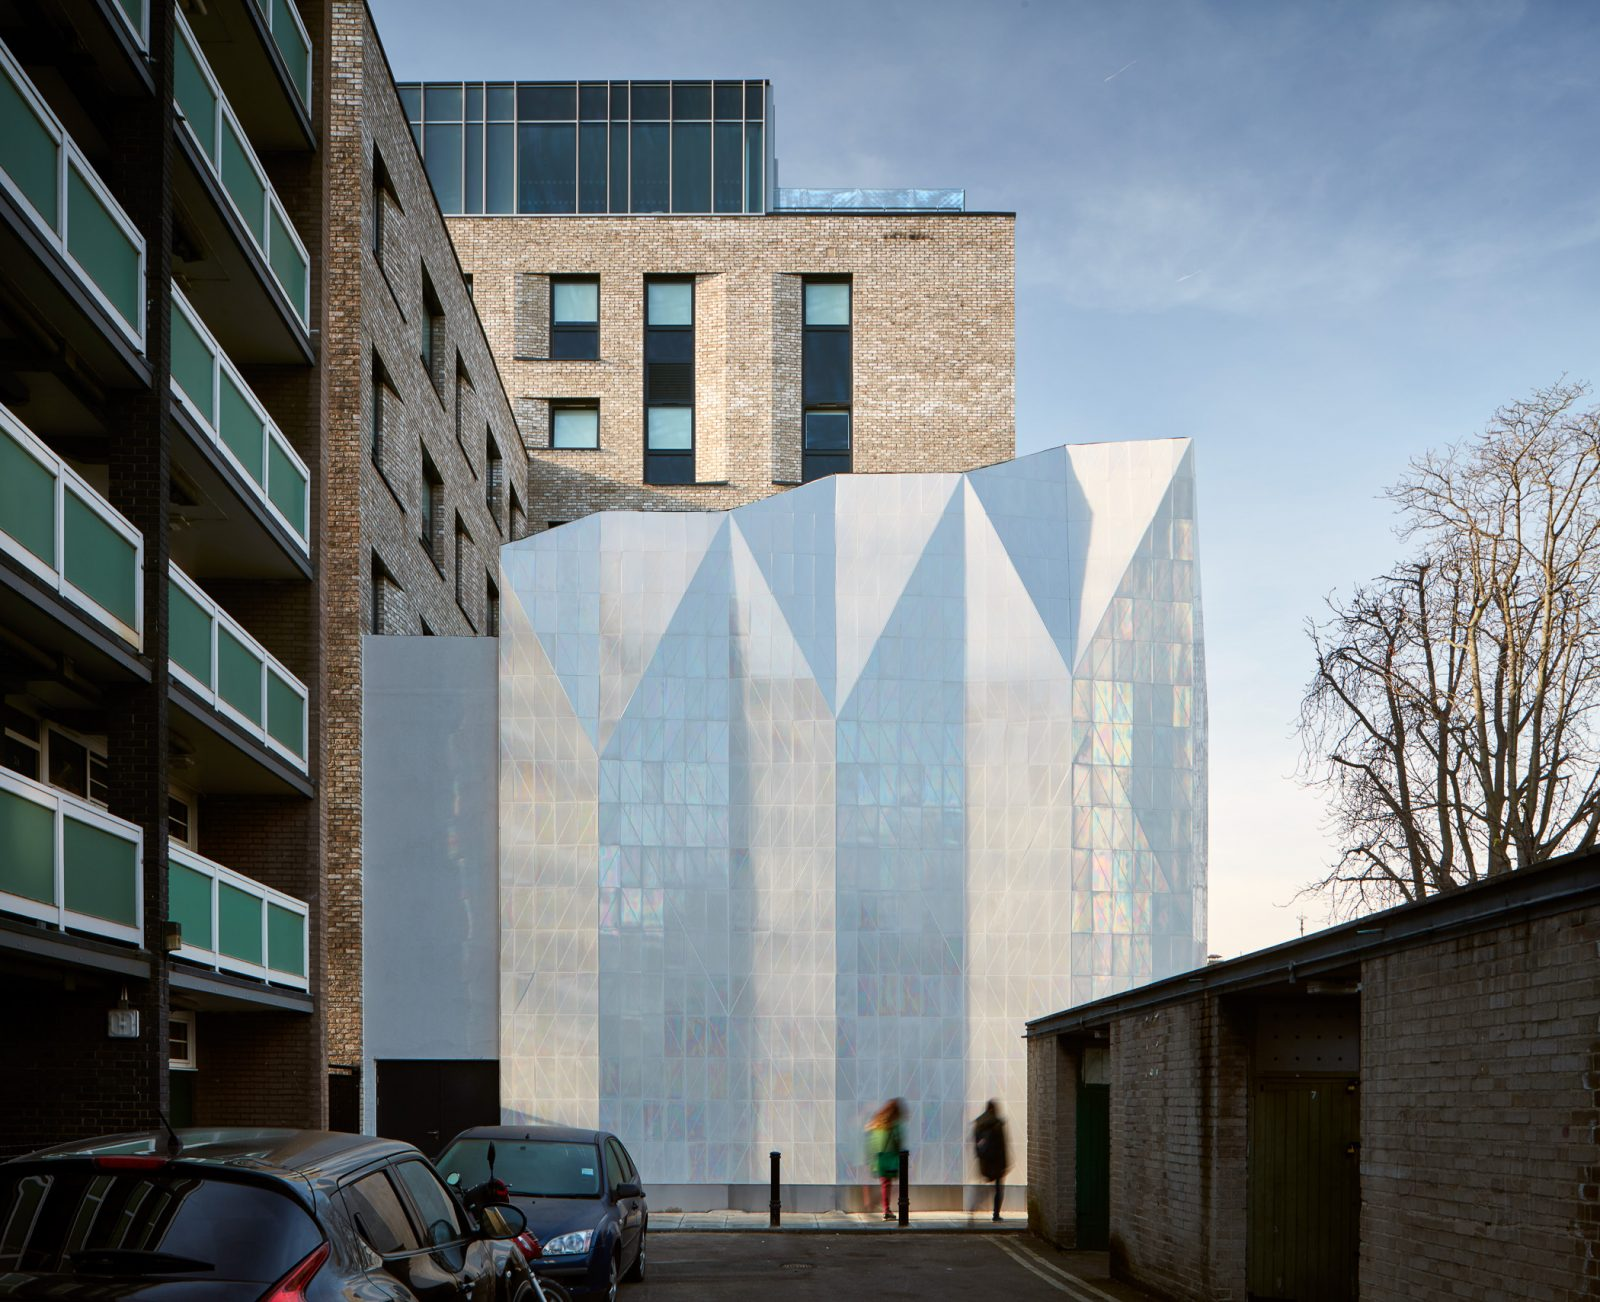 Jestico & Whiles project Peckham shot by Architectural photographer Matt Clayton